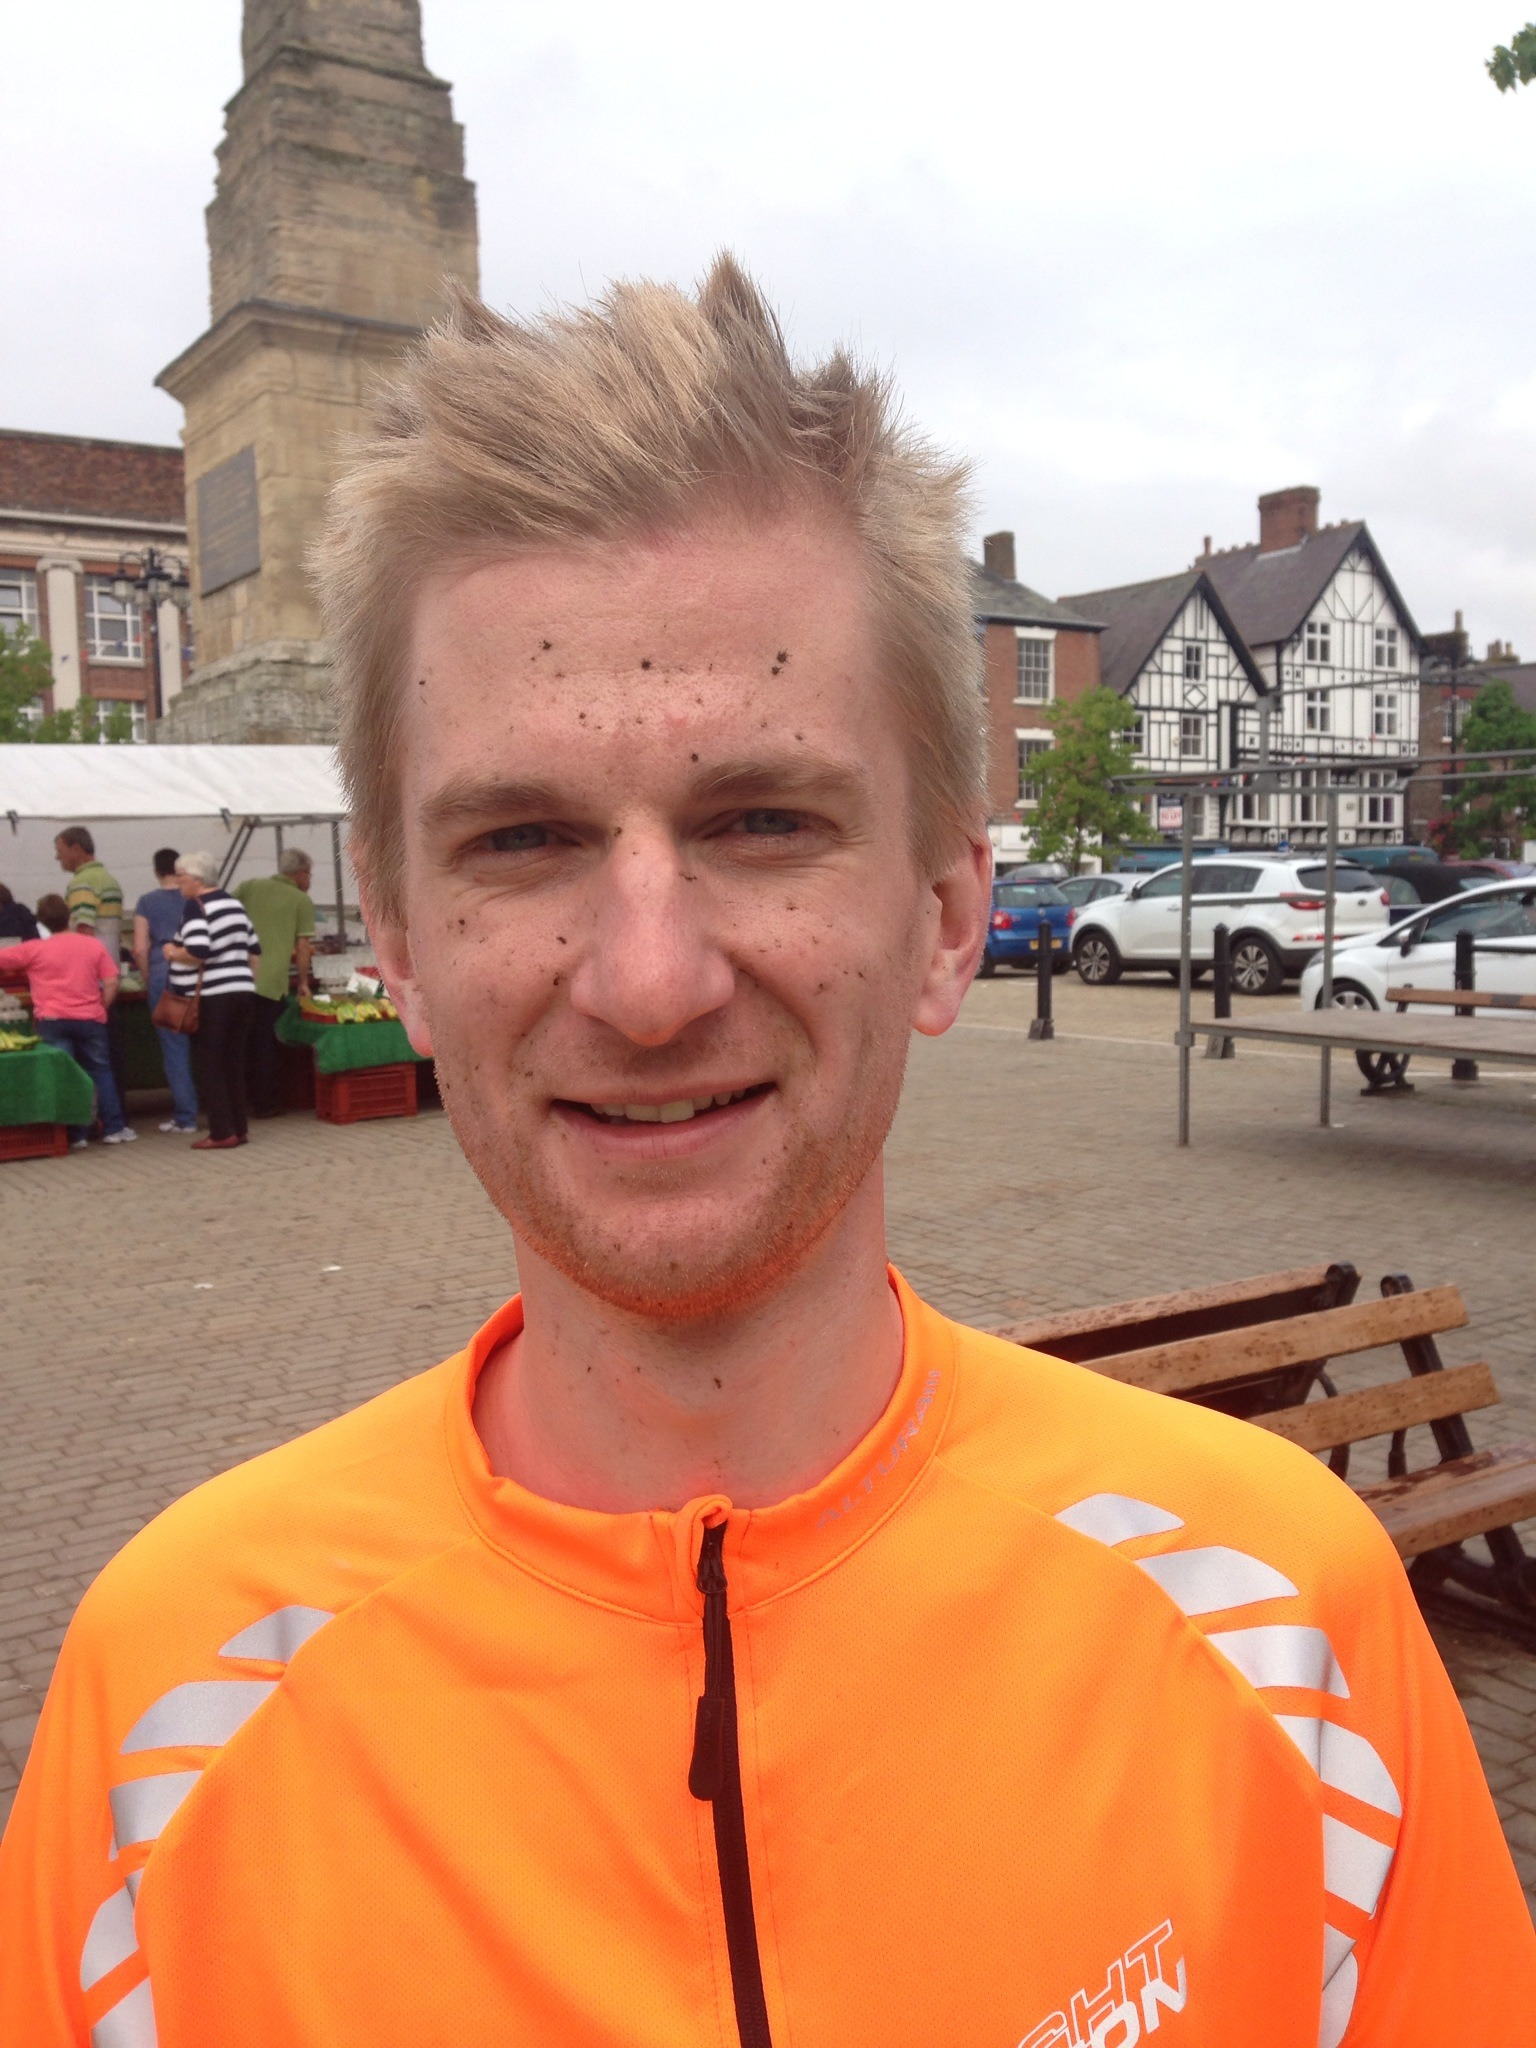 (7027979) James Izzard who is aiming to cycle 170 miles in a day for cancer charities